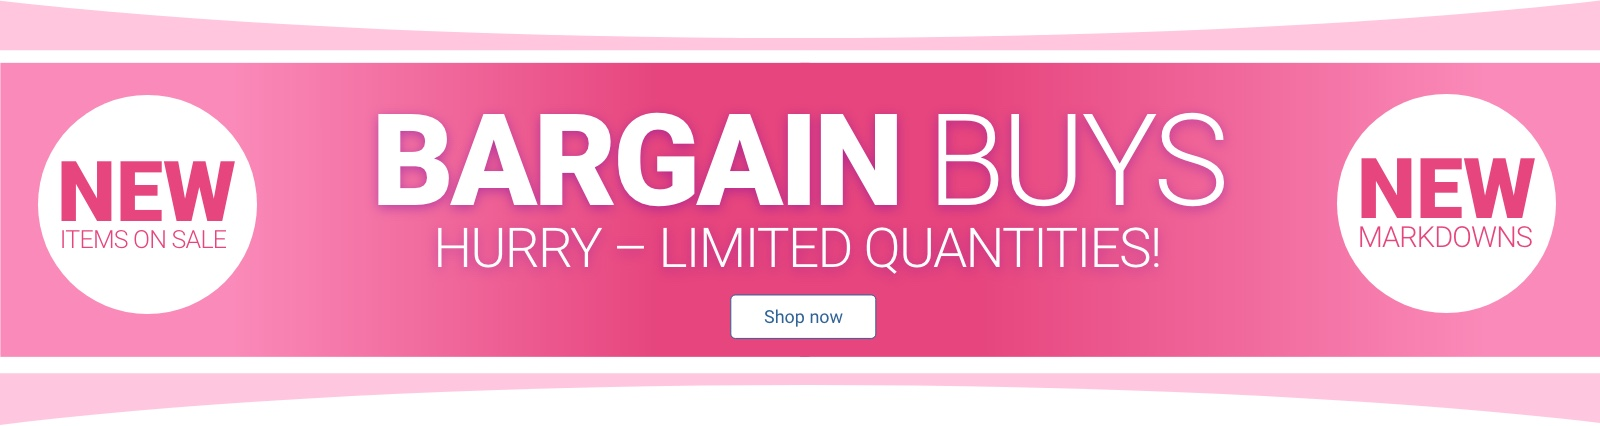 Bargain Buys Shop Now